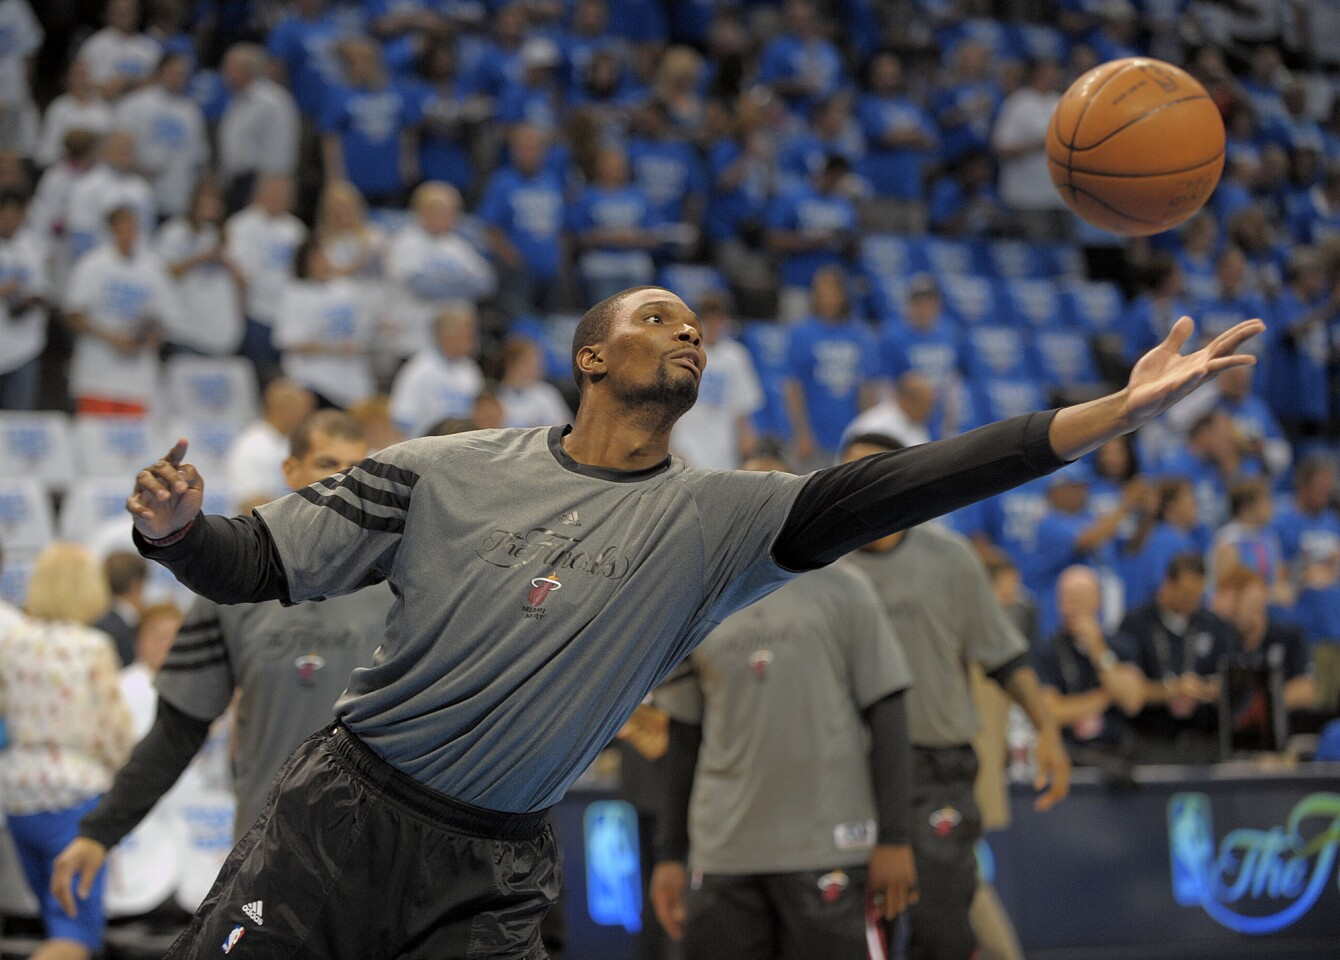 Miami Heat forward Chris Bosh reaches for a rebound during warm-ups for Game 2 of the NBA Finals at Chesapeake Energy Arena.